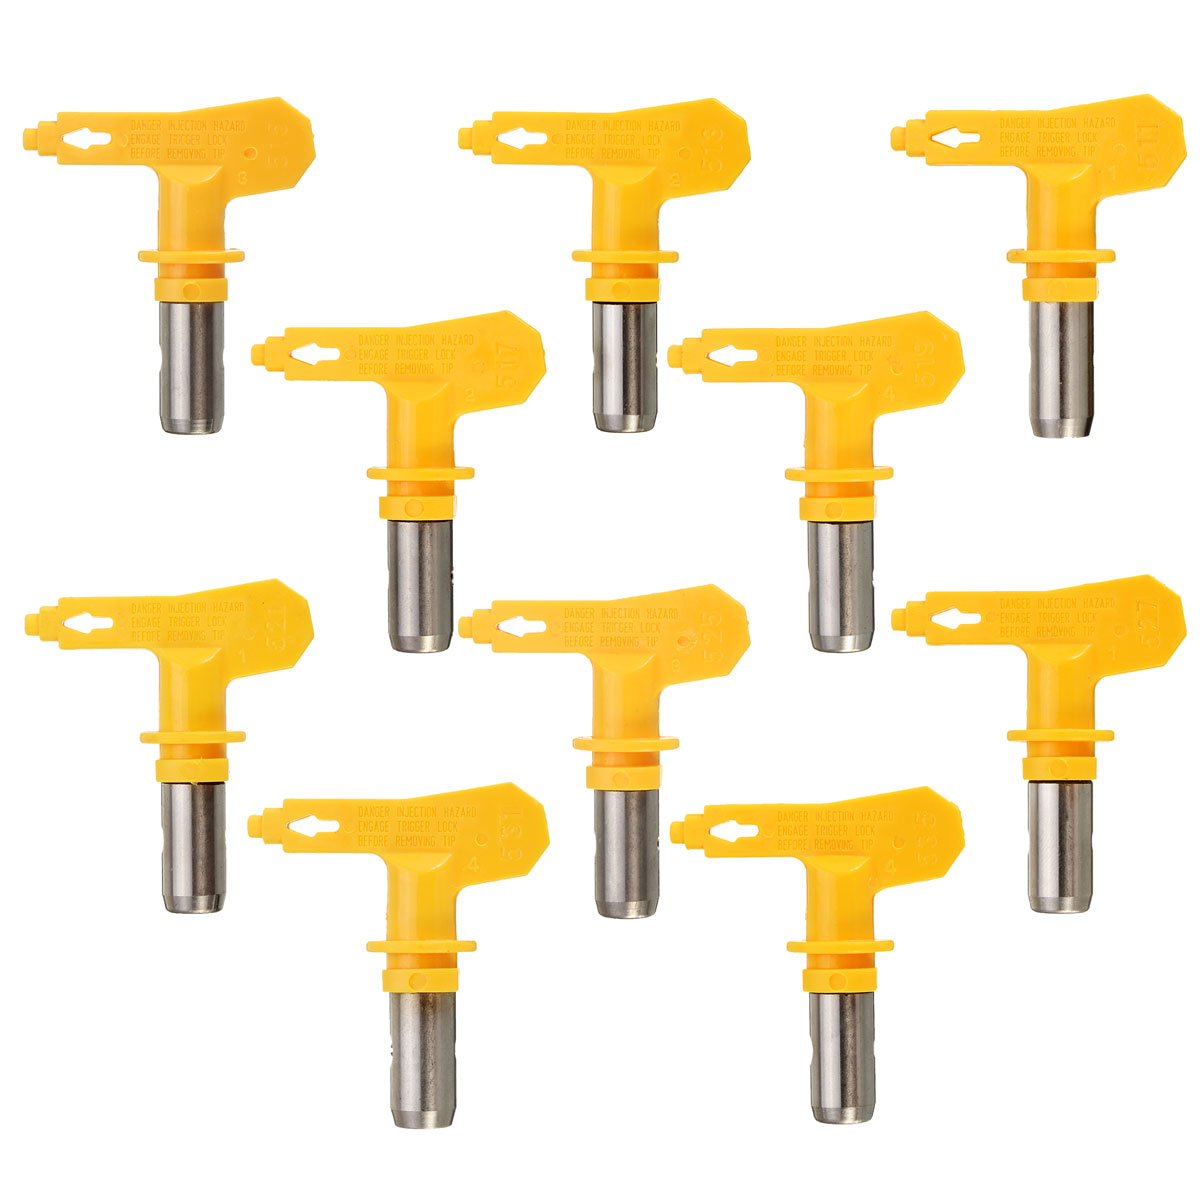 Yellow Series 5 Airbrush Nozzle For Painting Airless Paint Spray G Un Tip Powder Coating Portable Paint Sprayer Auto Repair Tool